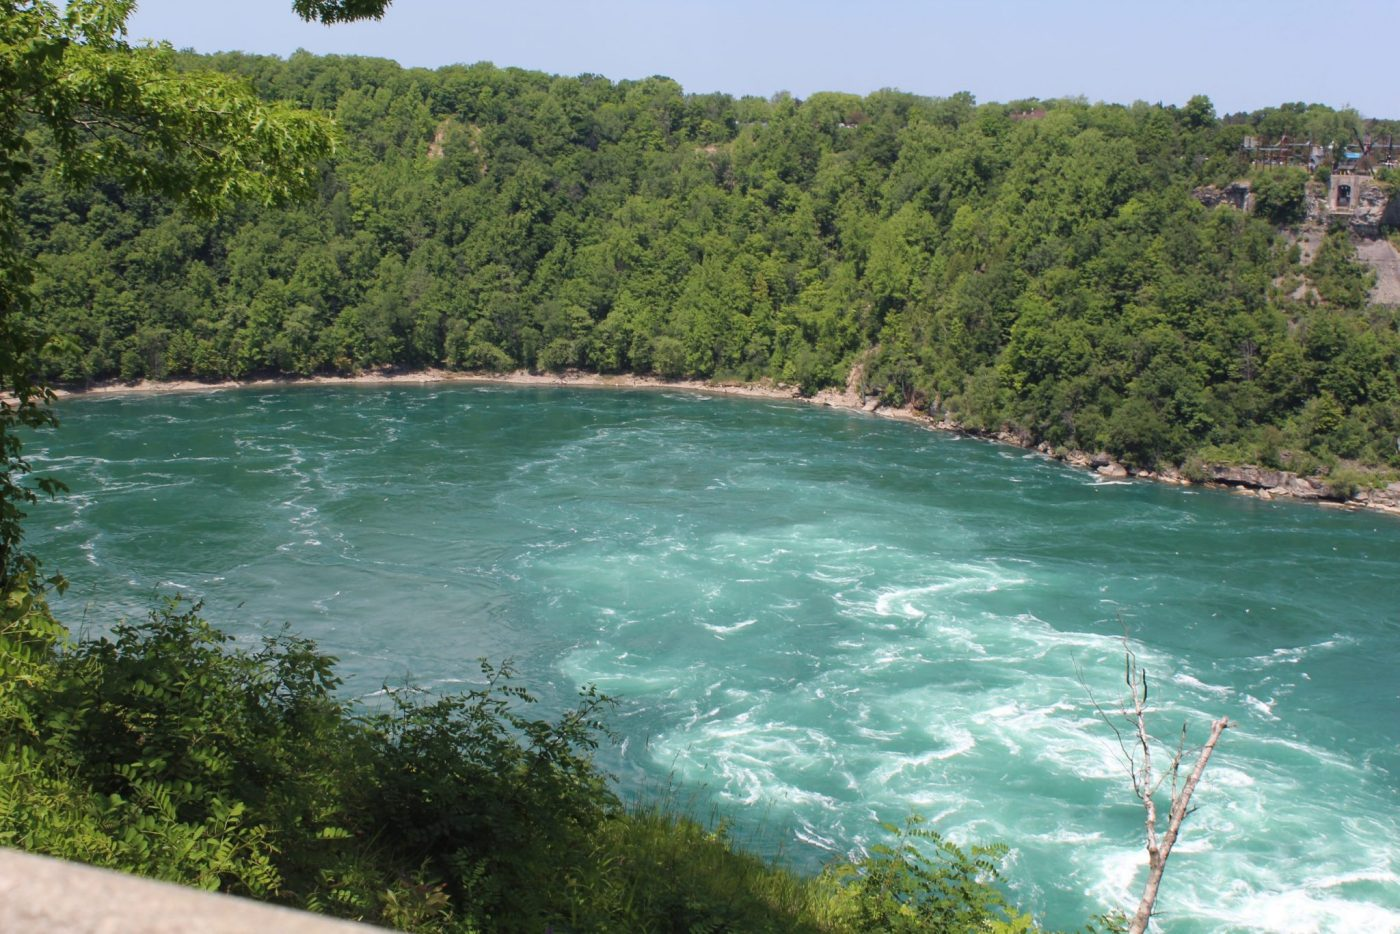 A photo of the Niagara River